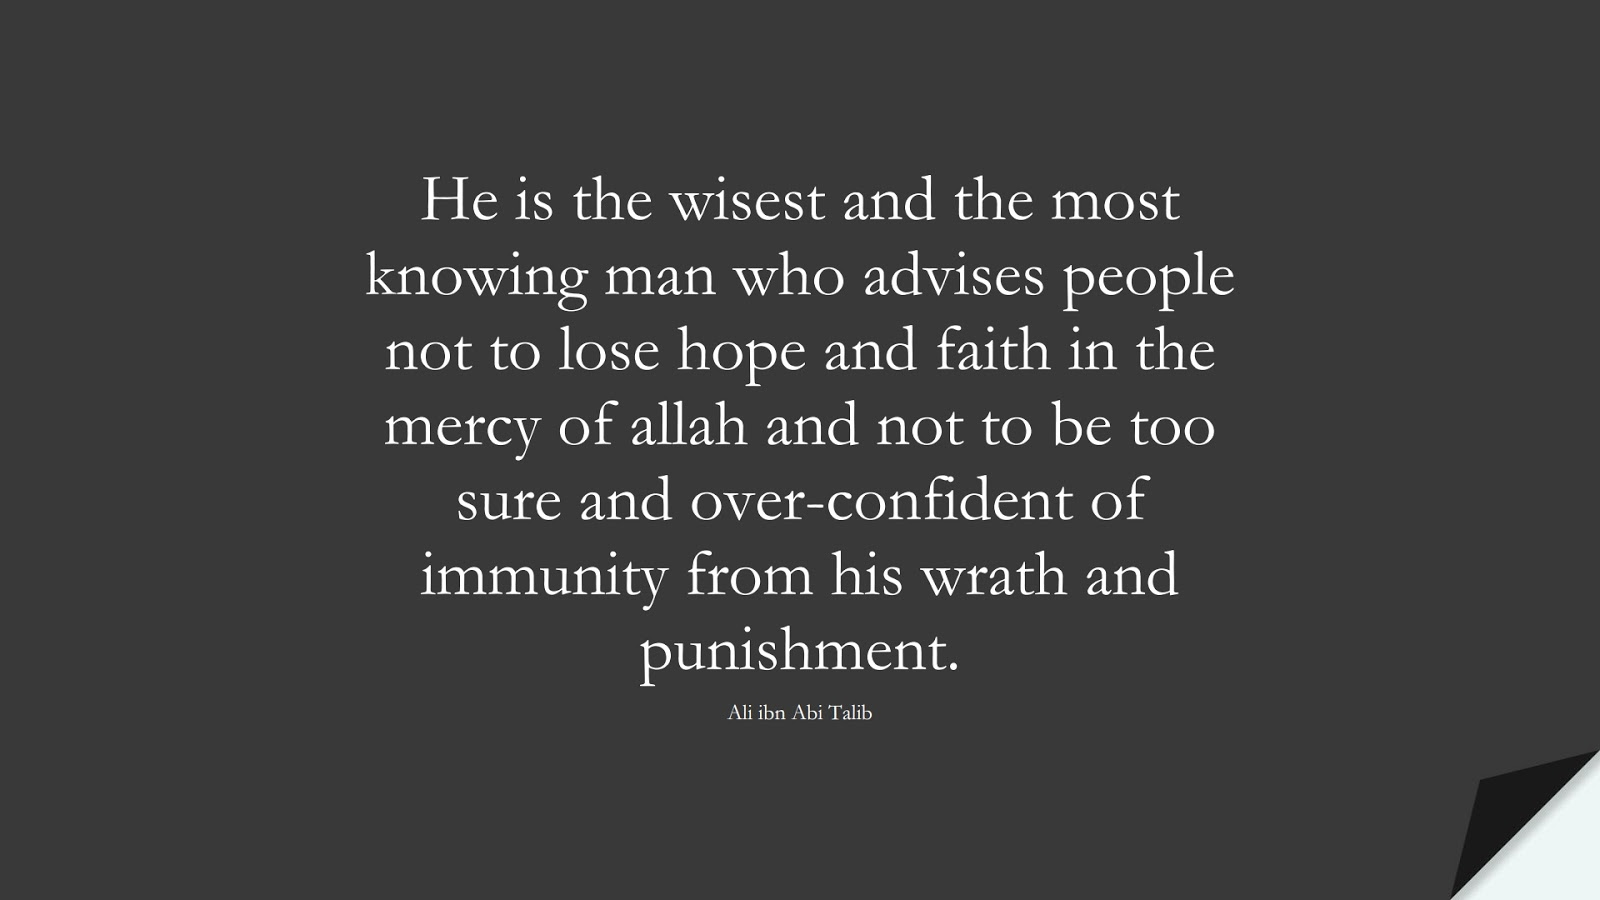 He is the wisest and the most knowing man who advises people not to lose hope and faith in the mercy of allah and not to be too sure and over-confident of immunity from his wrath and punishment. (Ali ibn Abi Talib);  #AliQuotes